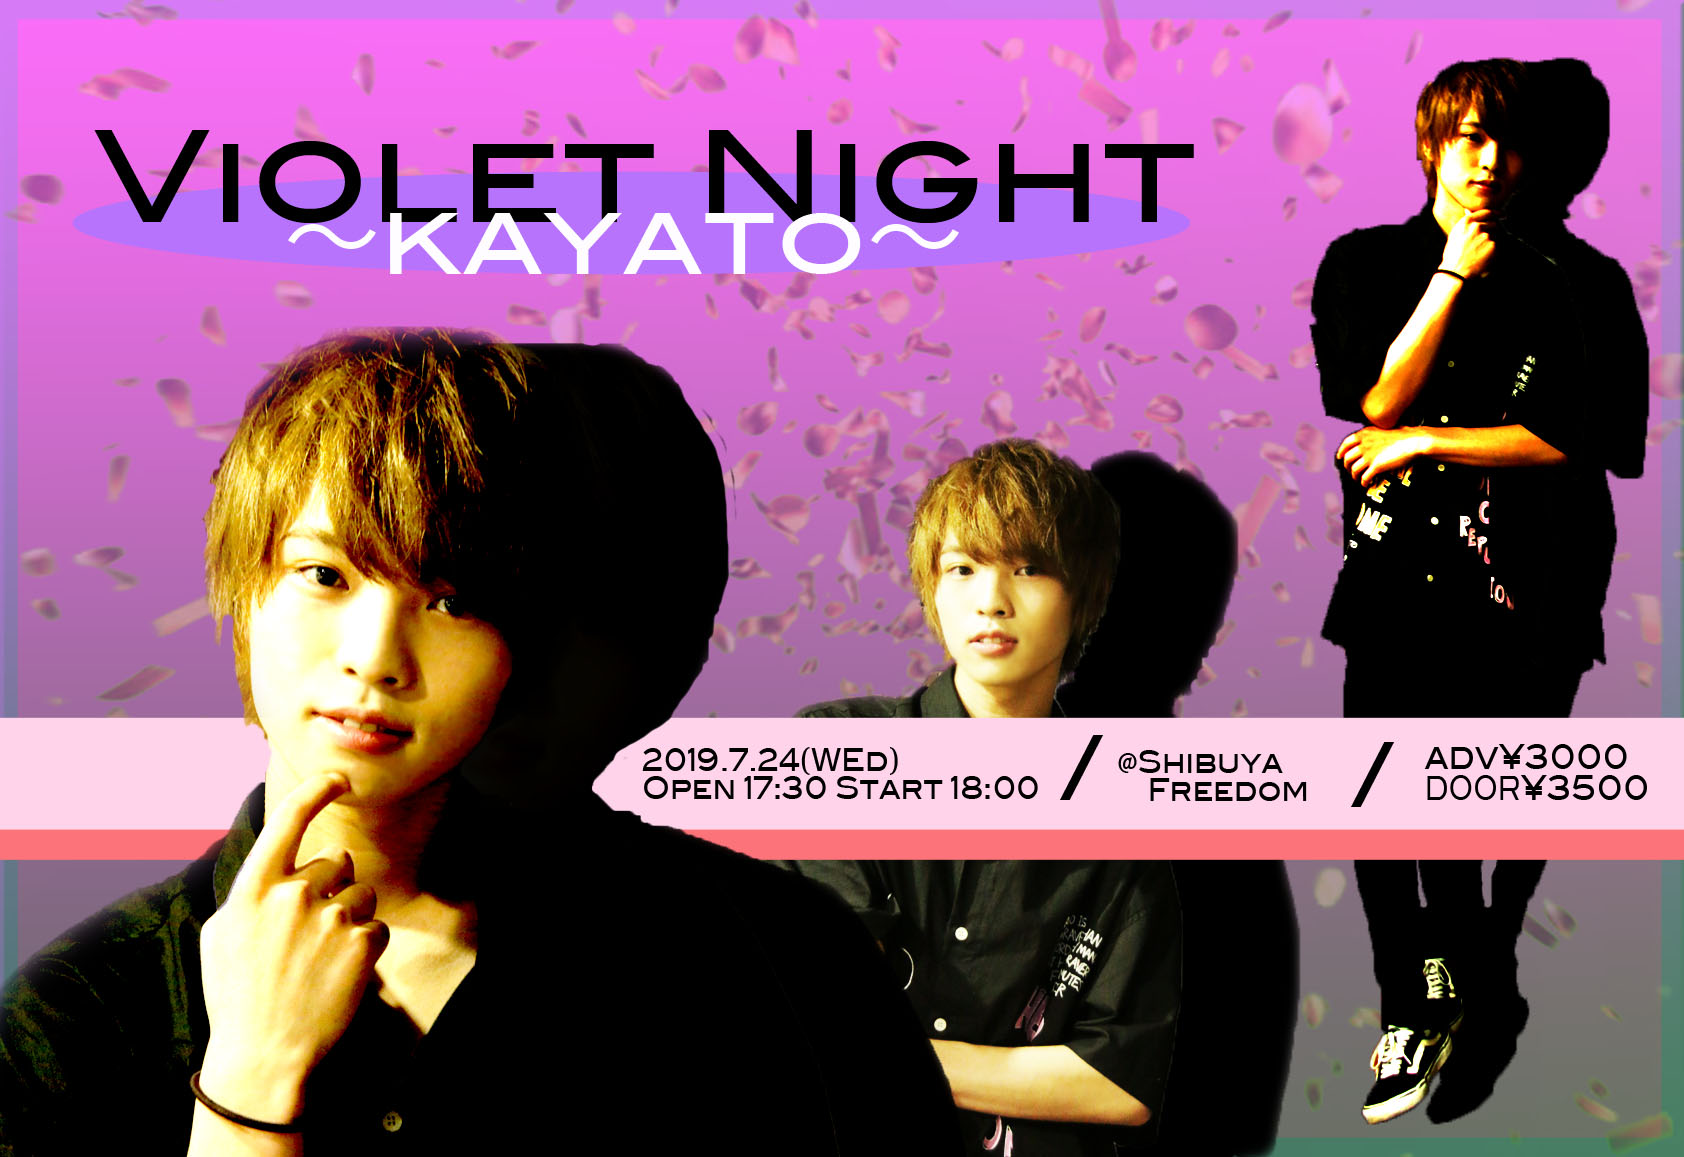 Violet Night~KAYATO~ Shibuya Freedom